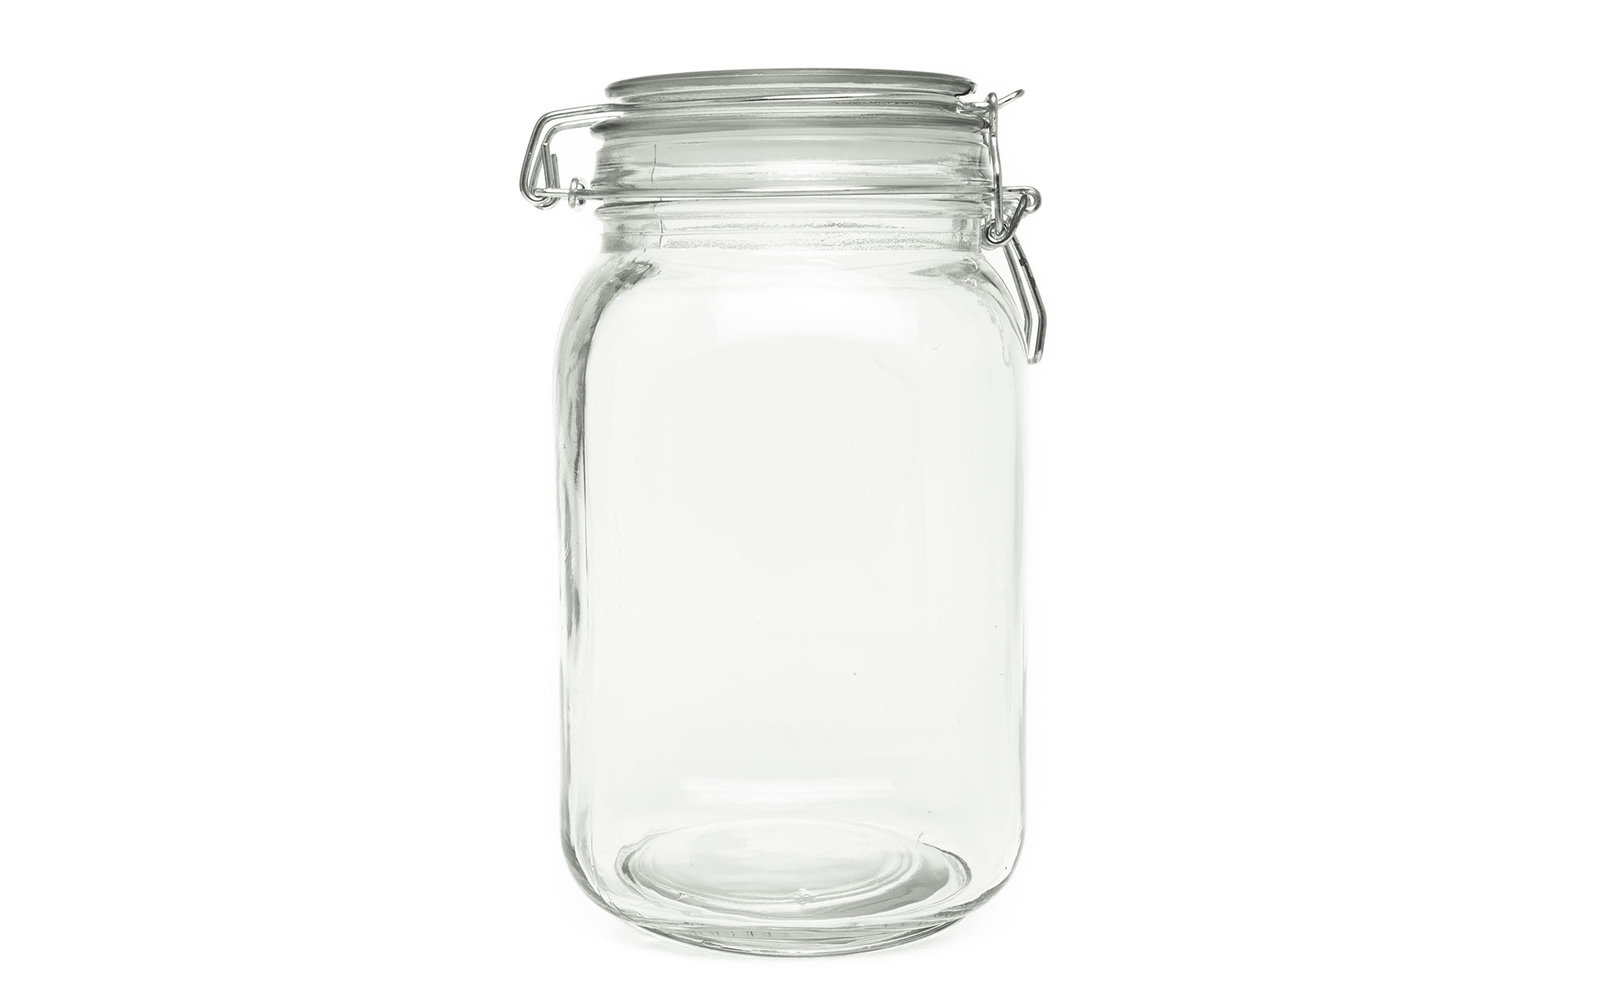 British Air is Being Sold for $28 a Jar